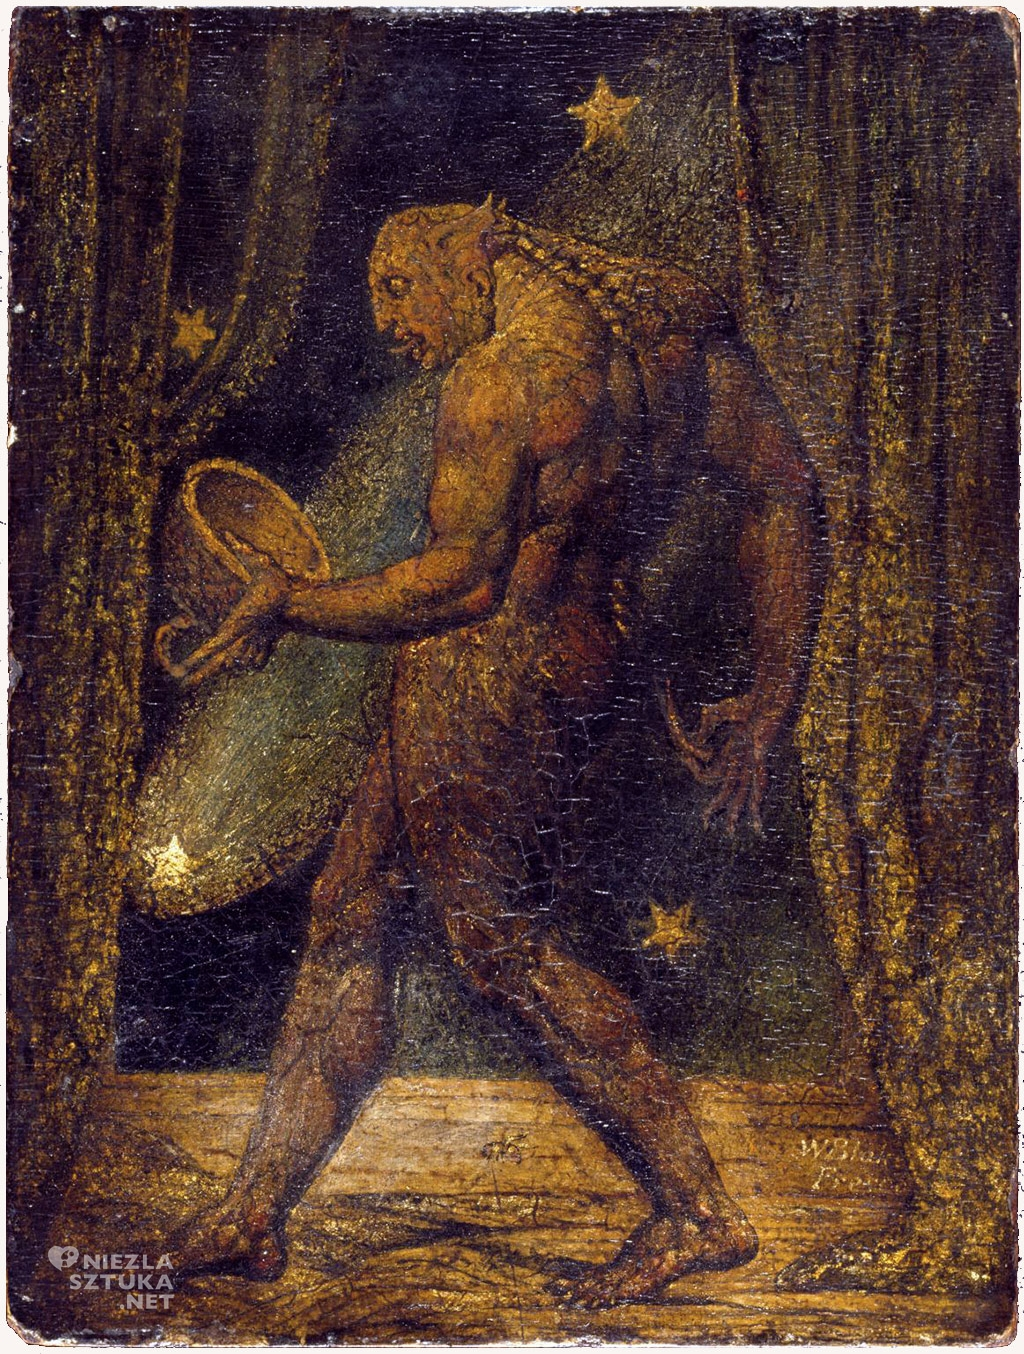 William Blake Duch pchły, ok. 1819–20